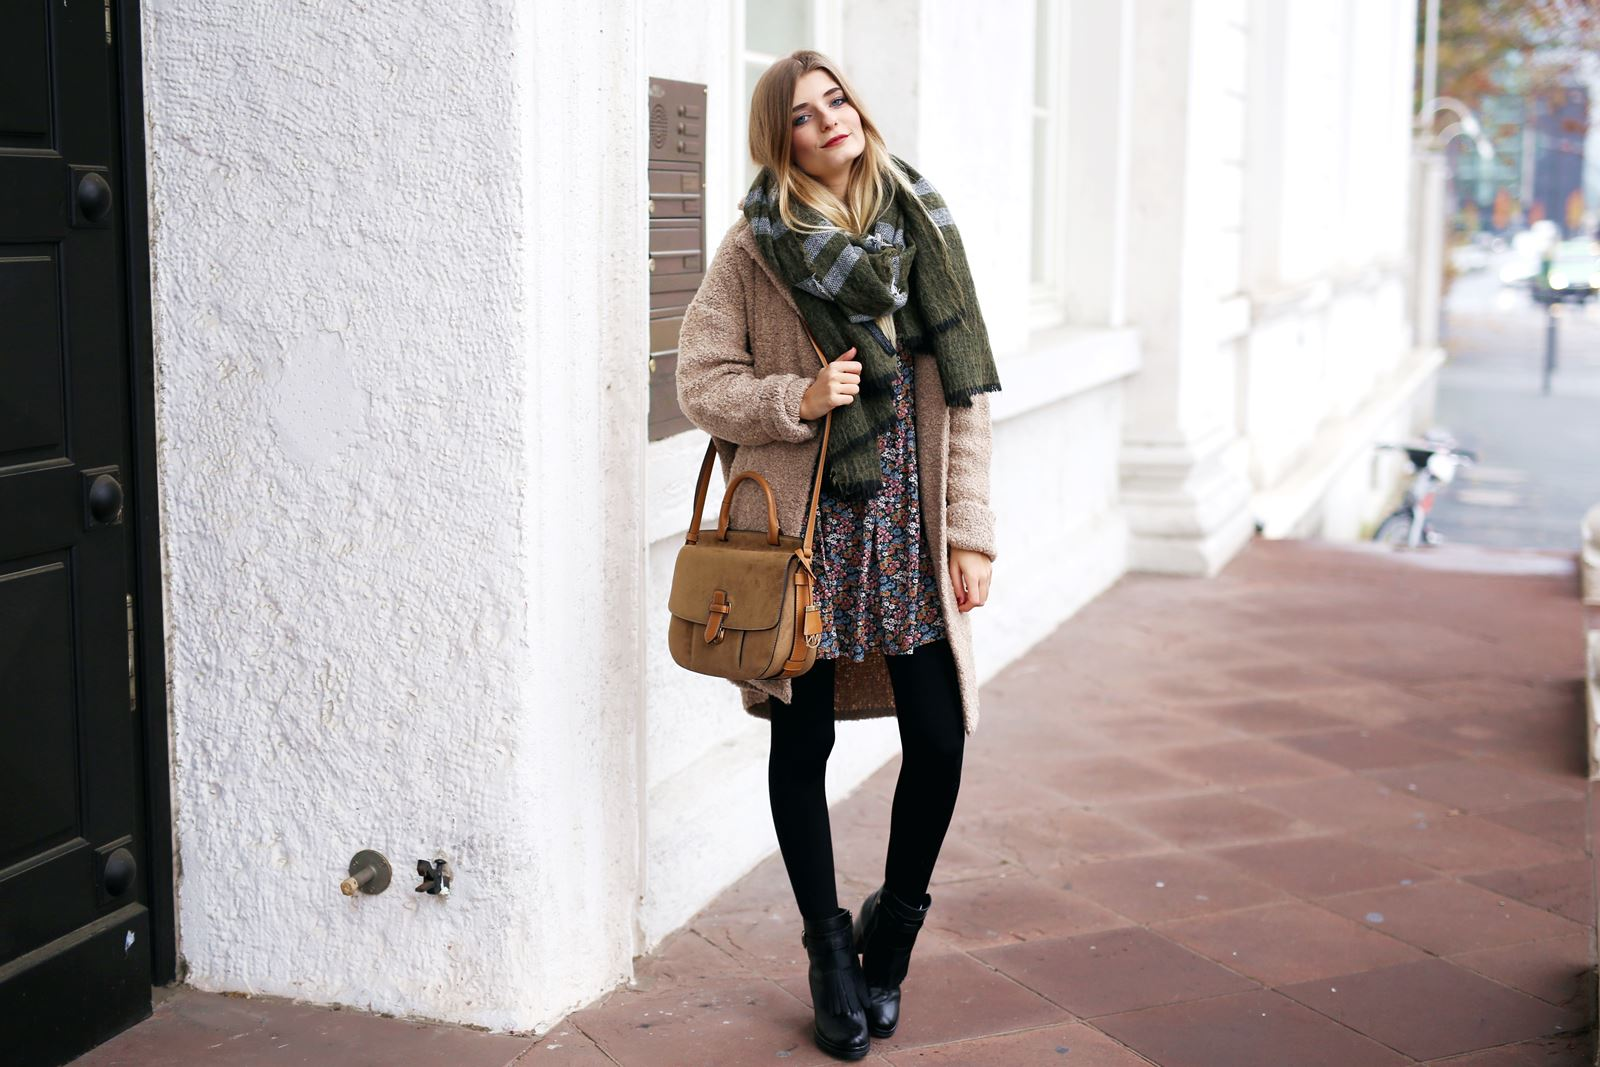 modeblog-fashion-blog-outfit-herbst-mantel-michael-kors-tasche-4